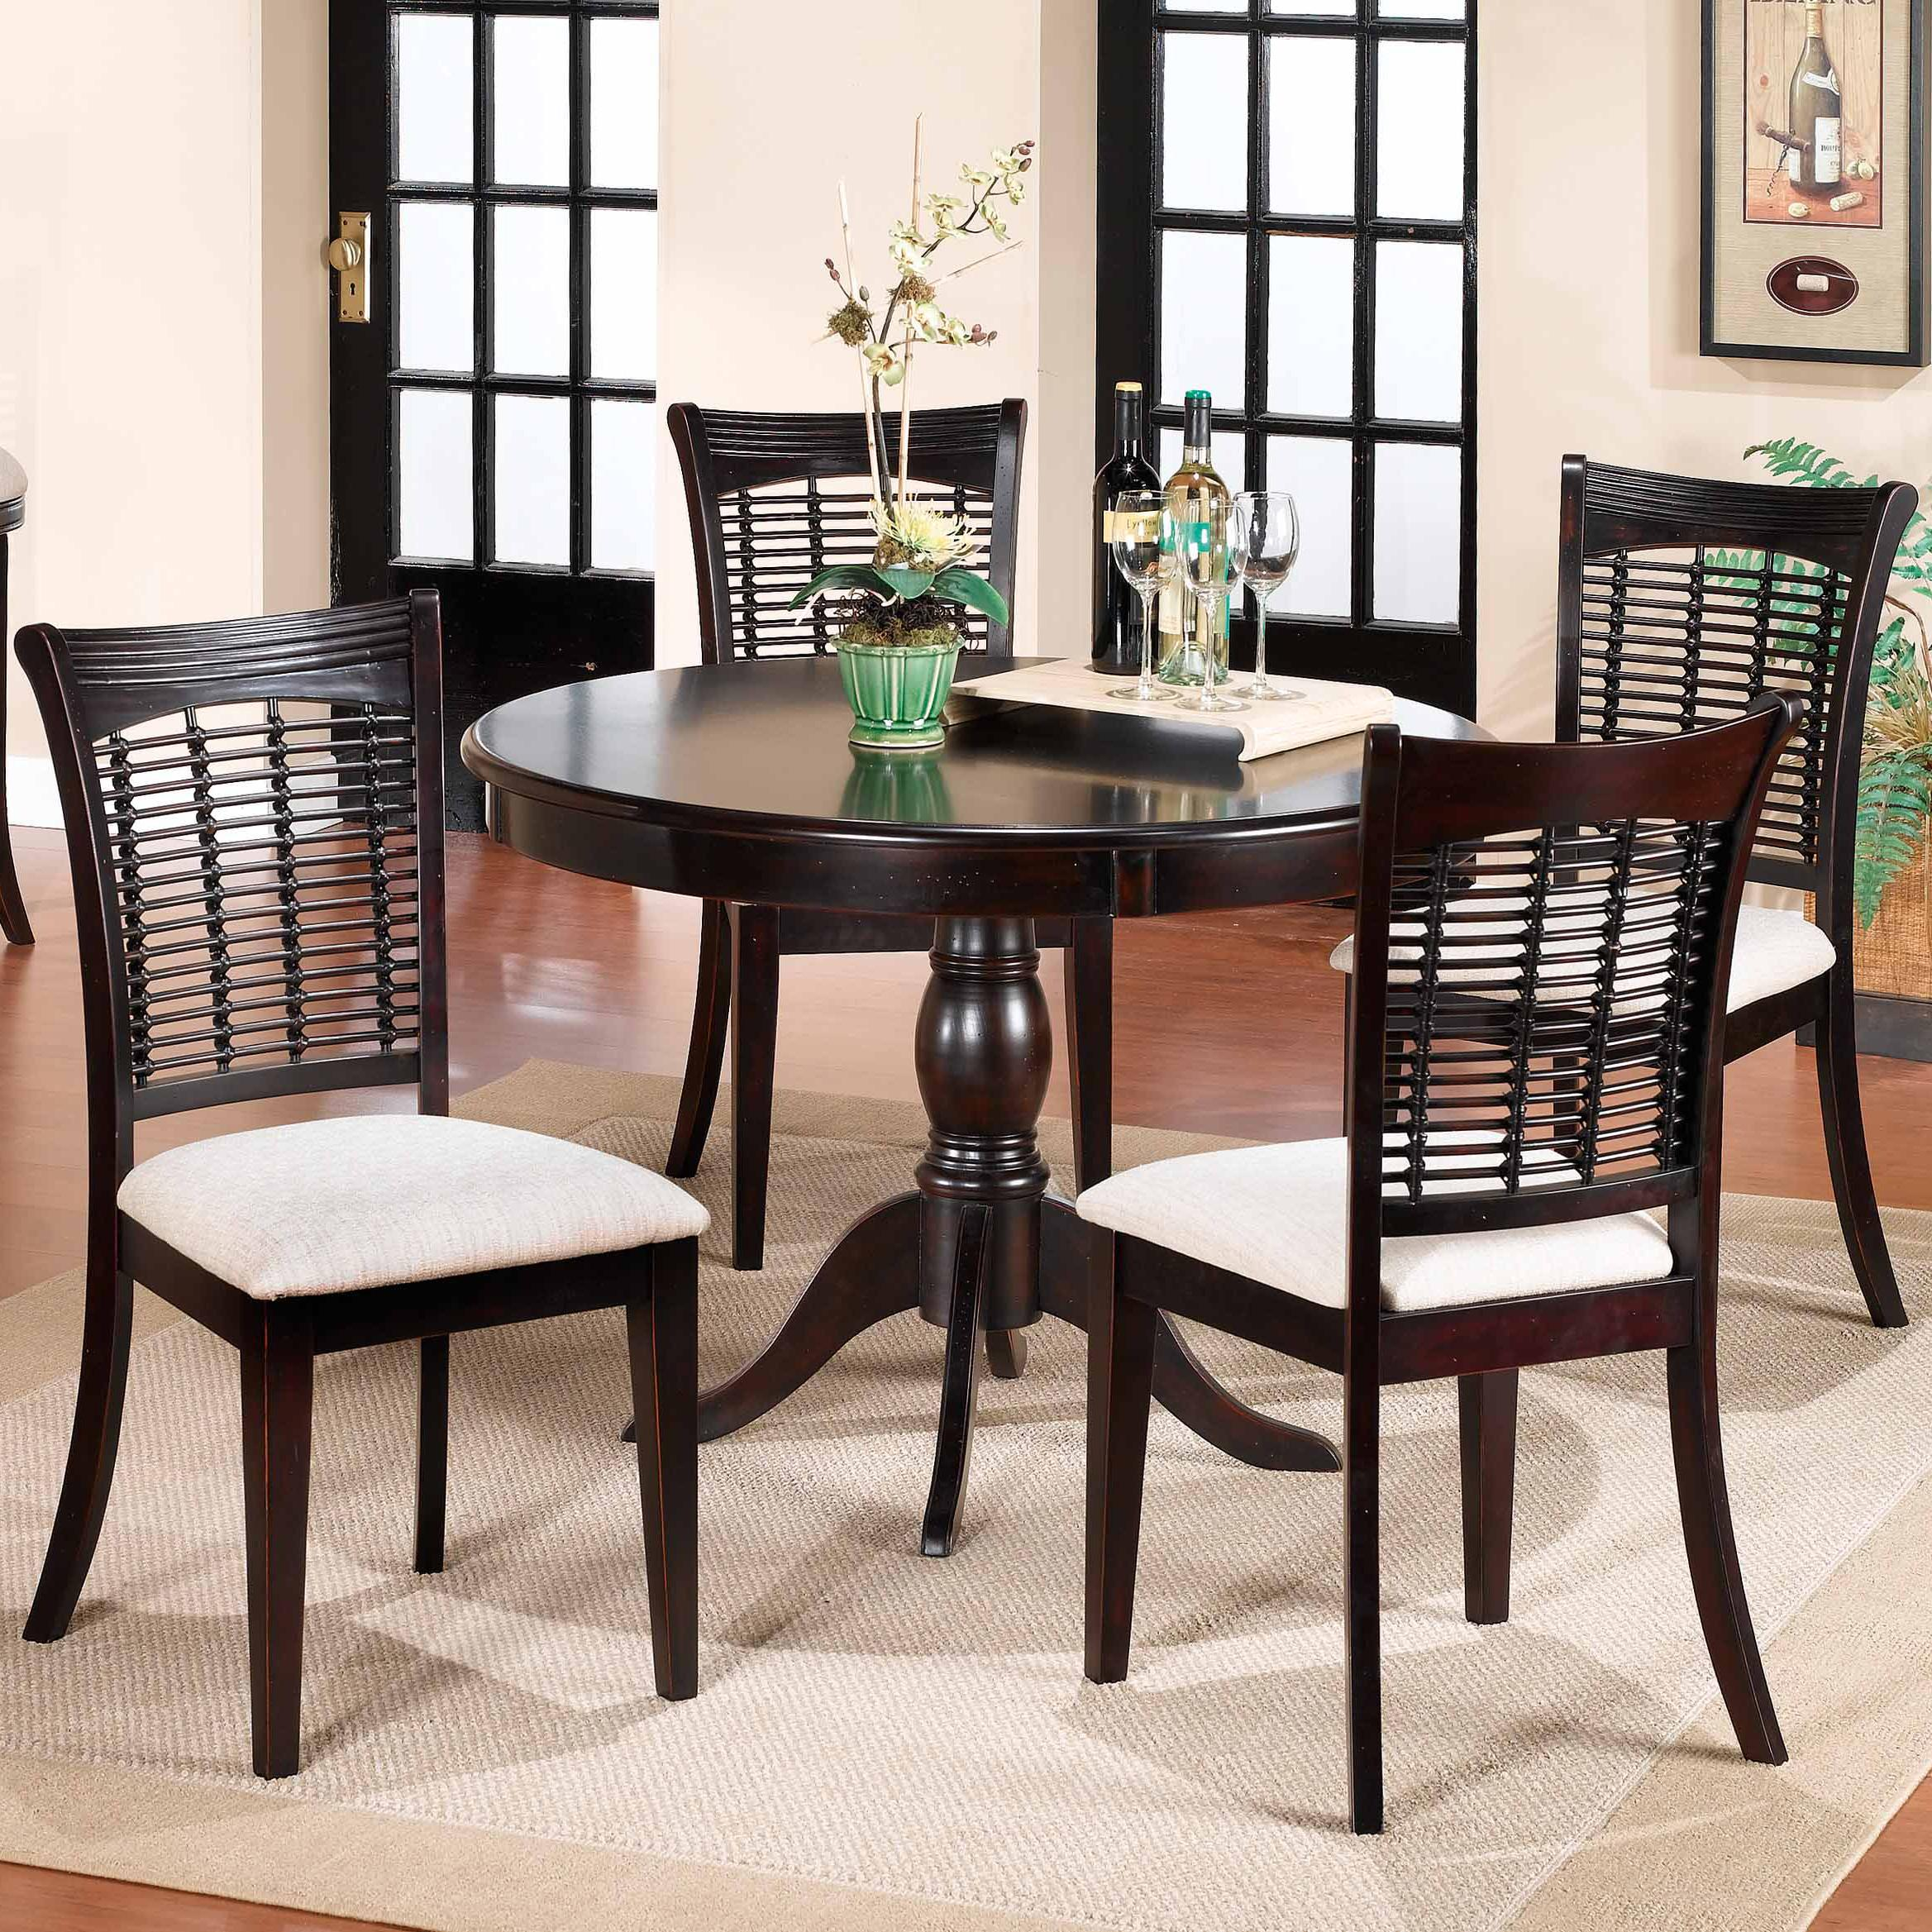 Bayberry and Glenmary Five Piece Round Dining Set by Hillsdale at Simply Home by Lindy's